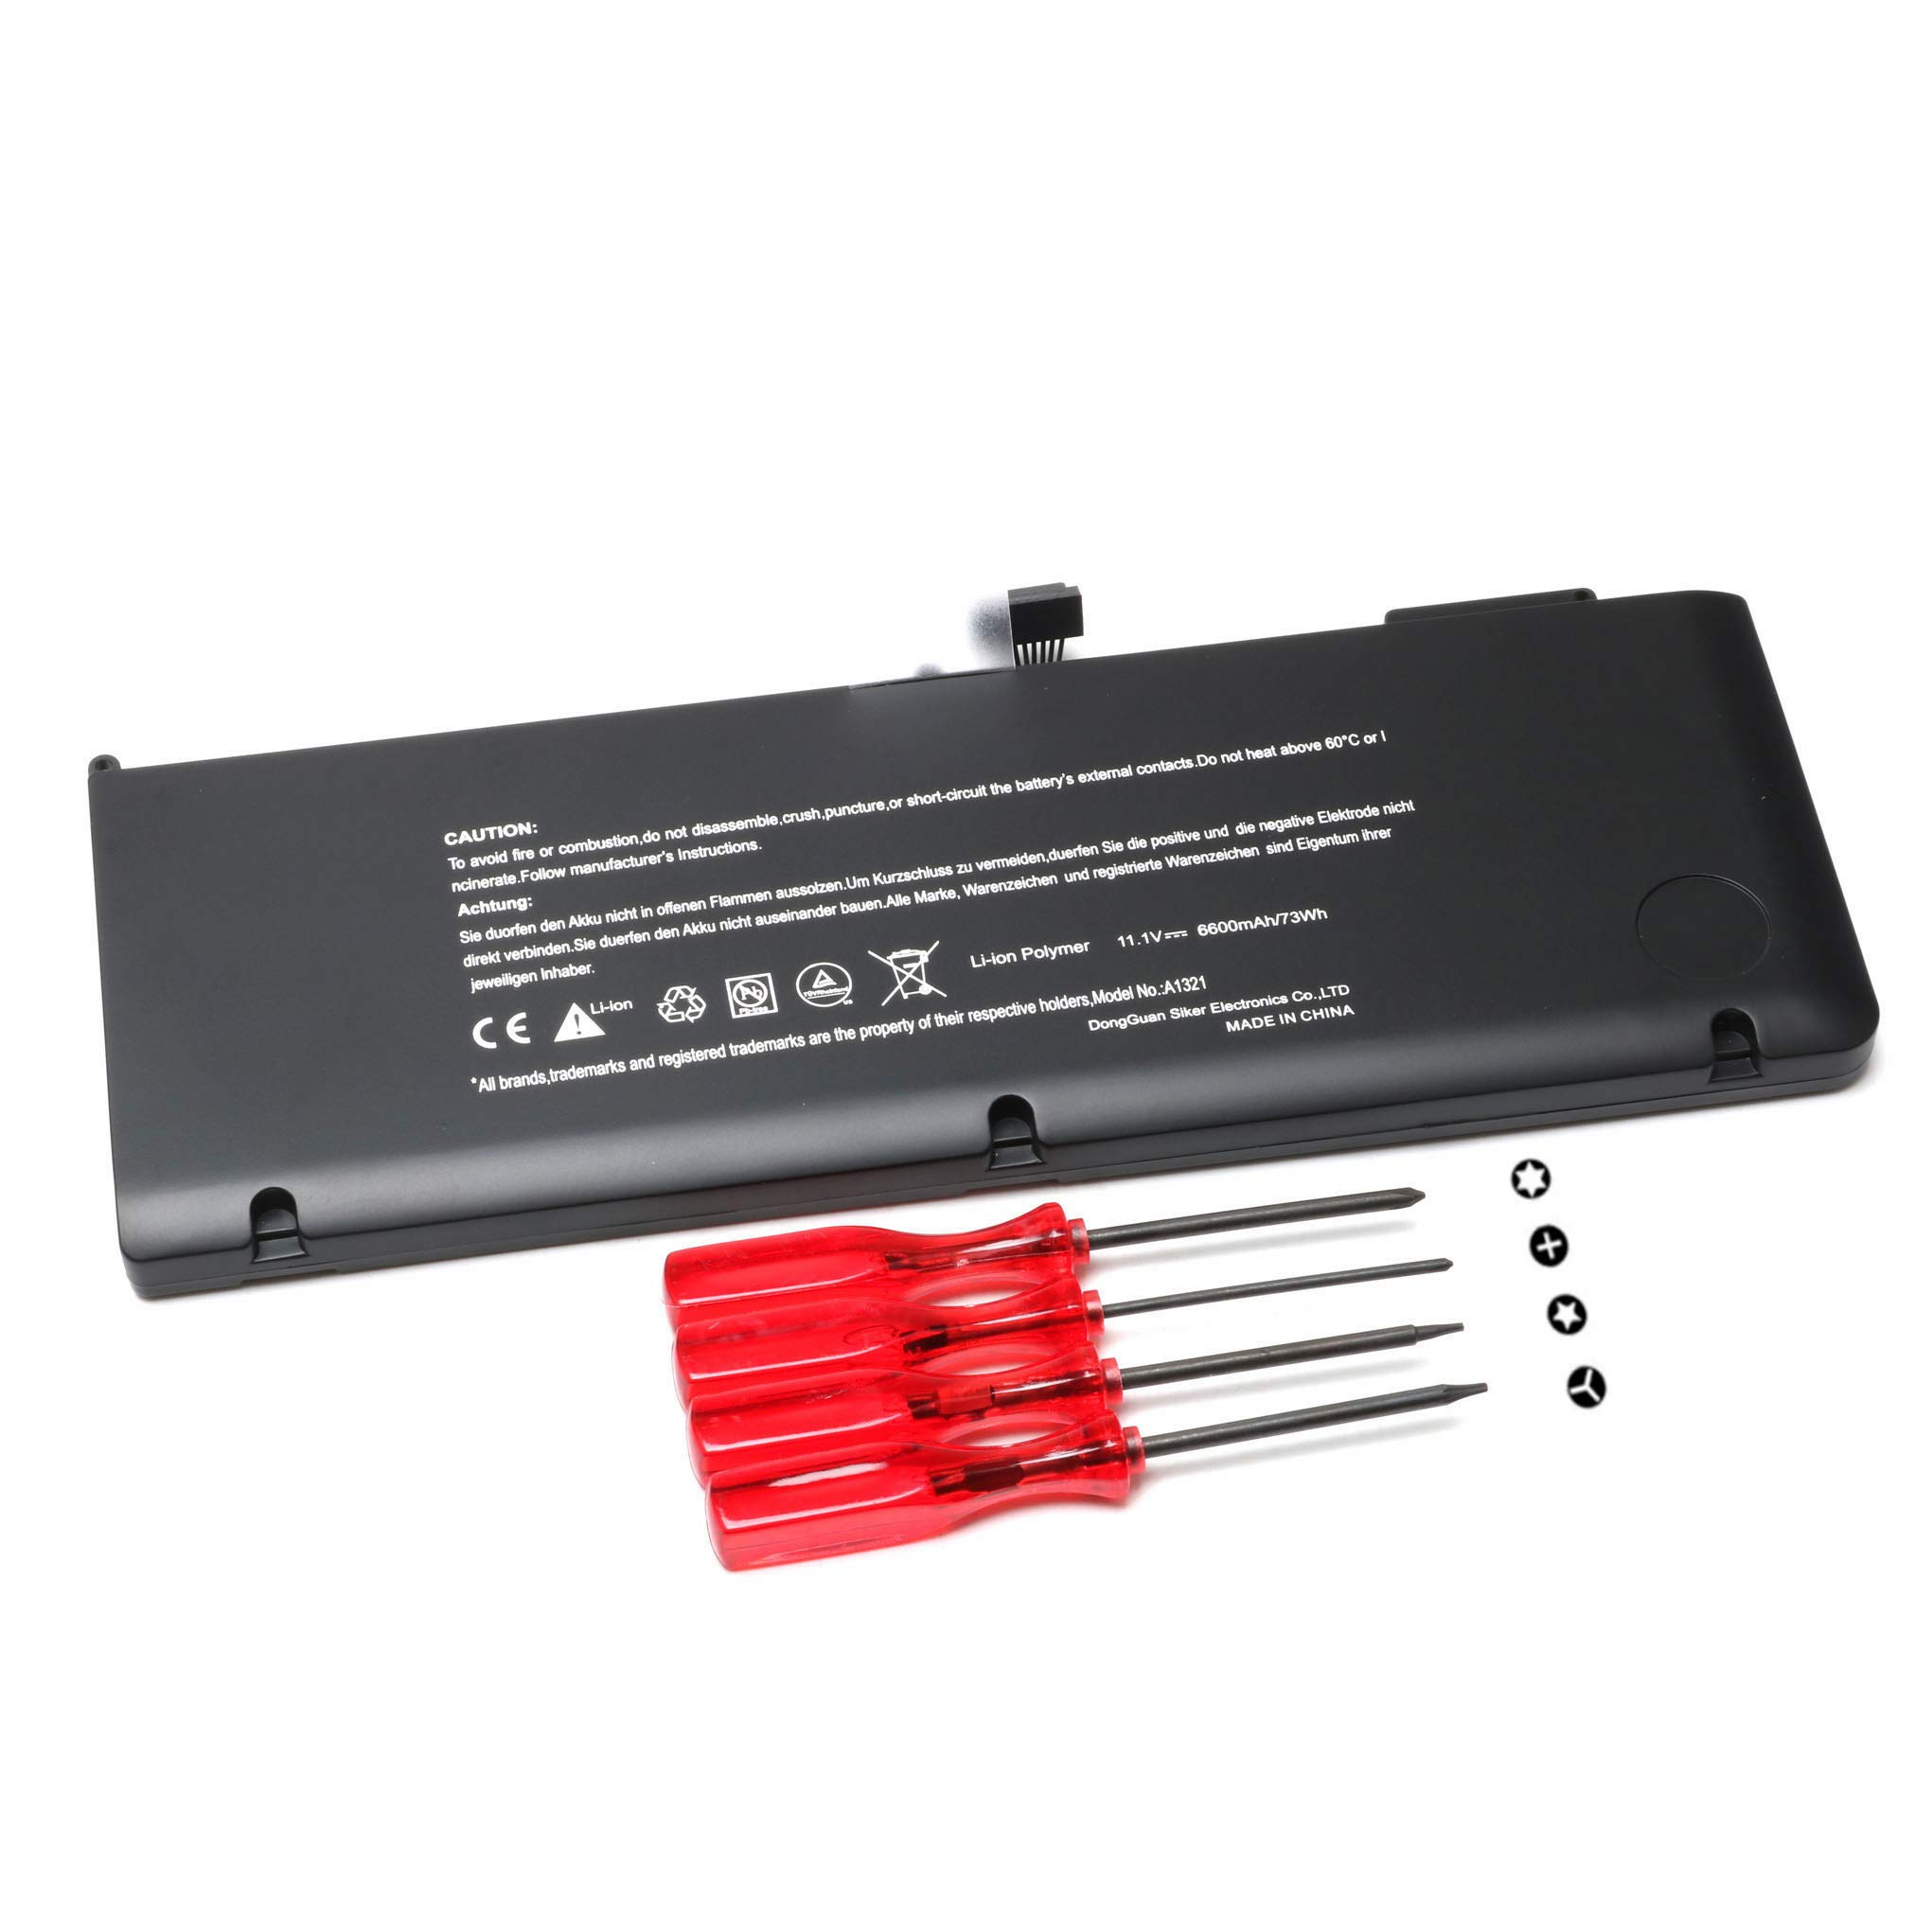 A1321 New Laptop Battery for MacBook Pro 15'' inch A1286 Battery(Only for Mid 2009, Mid 2010 Version),fits MB985 MB986J/A MC118LL/A MC373LL/A MB986LL/A